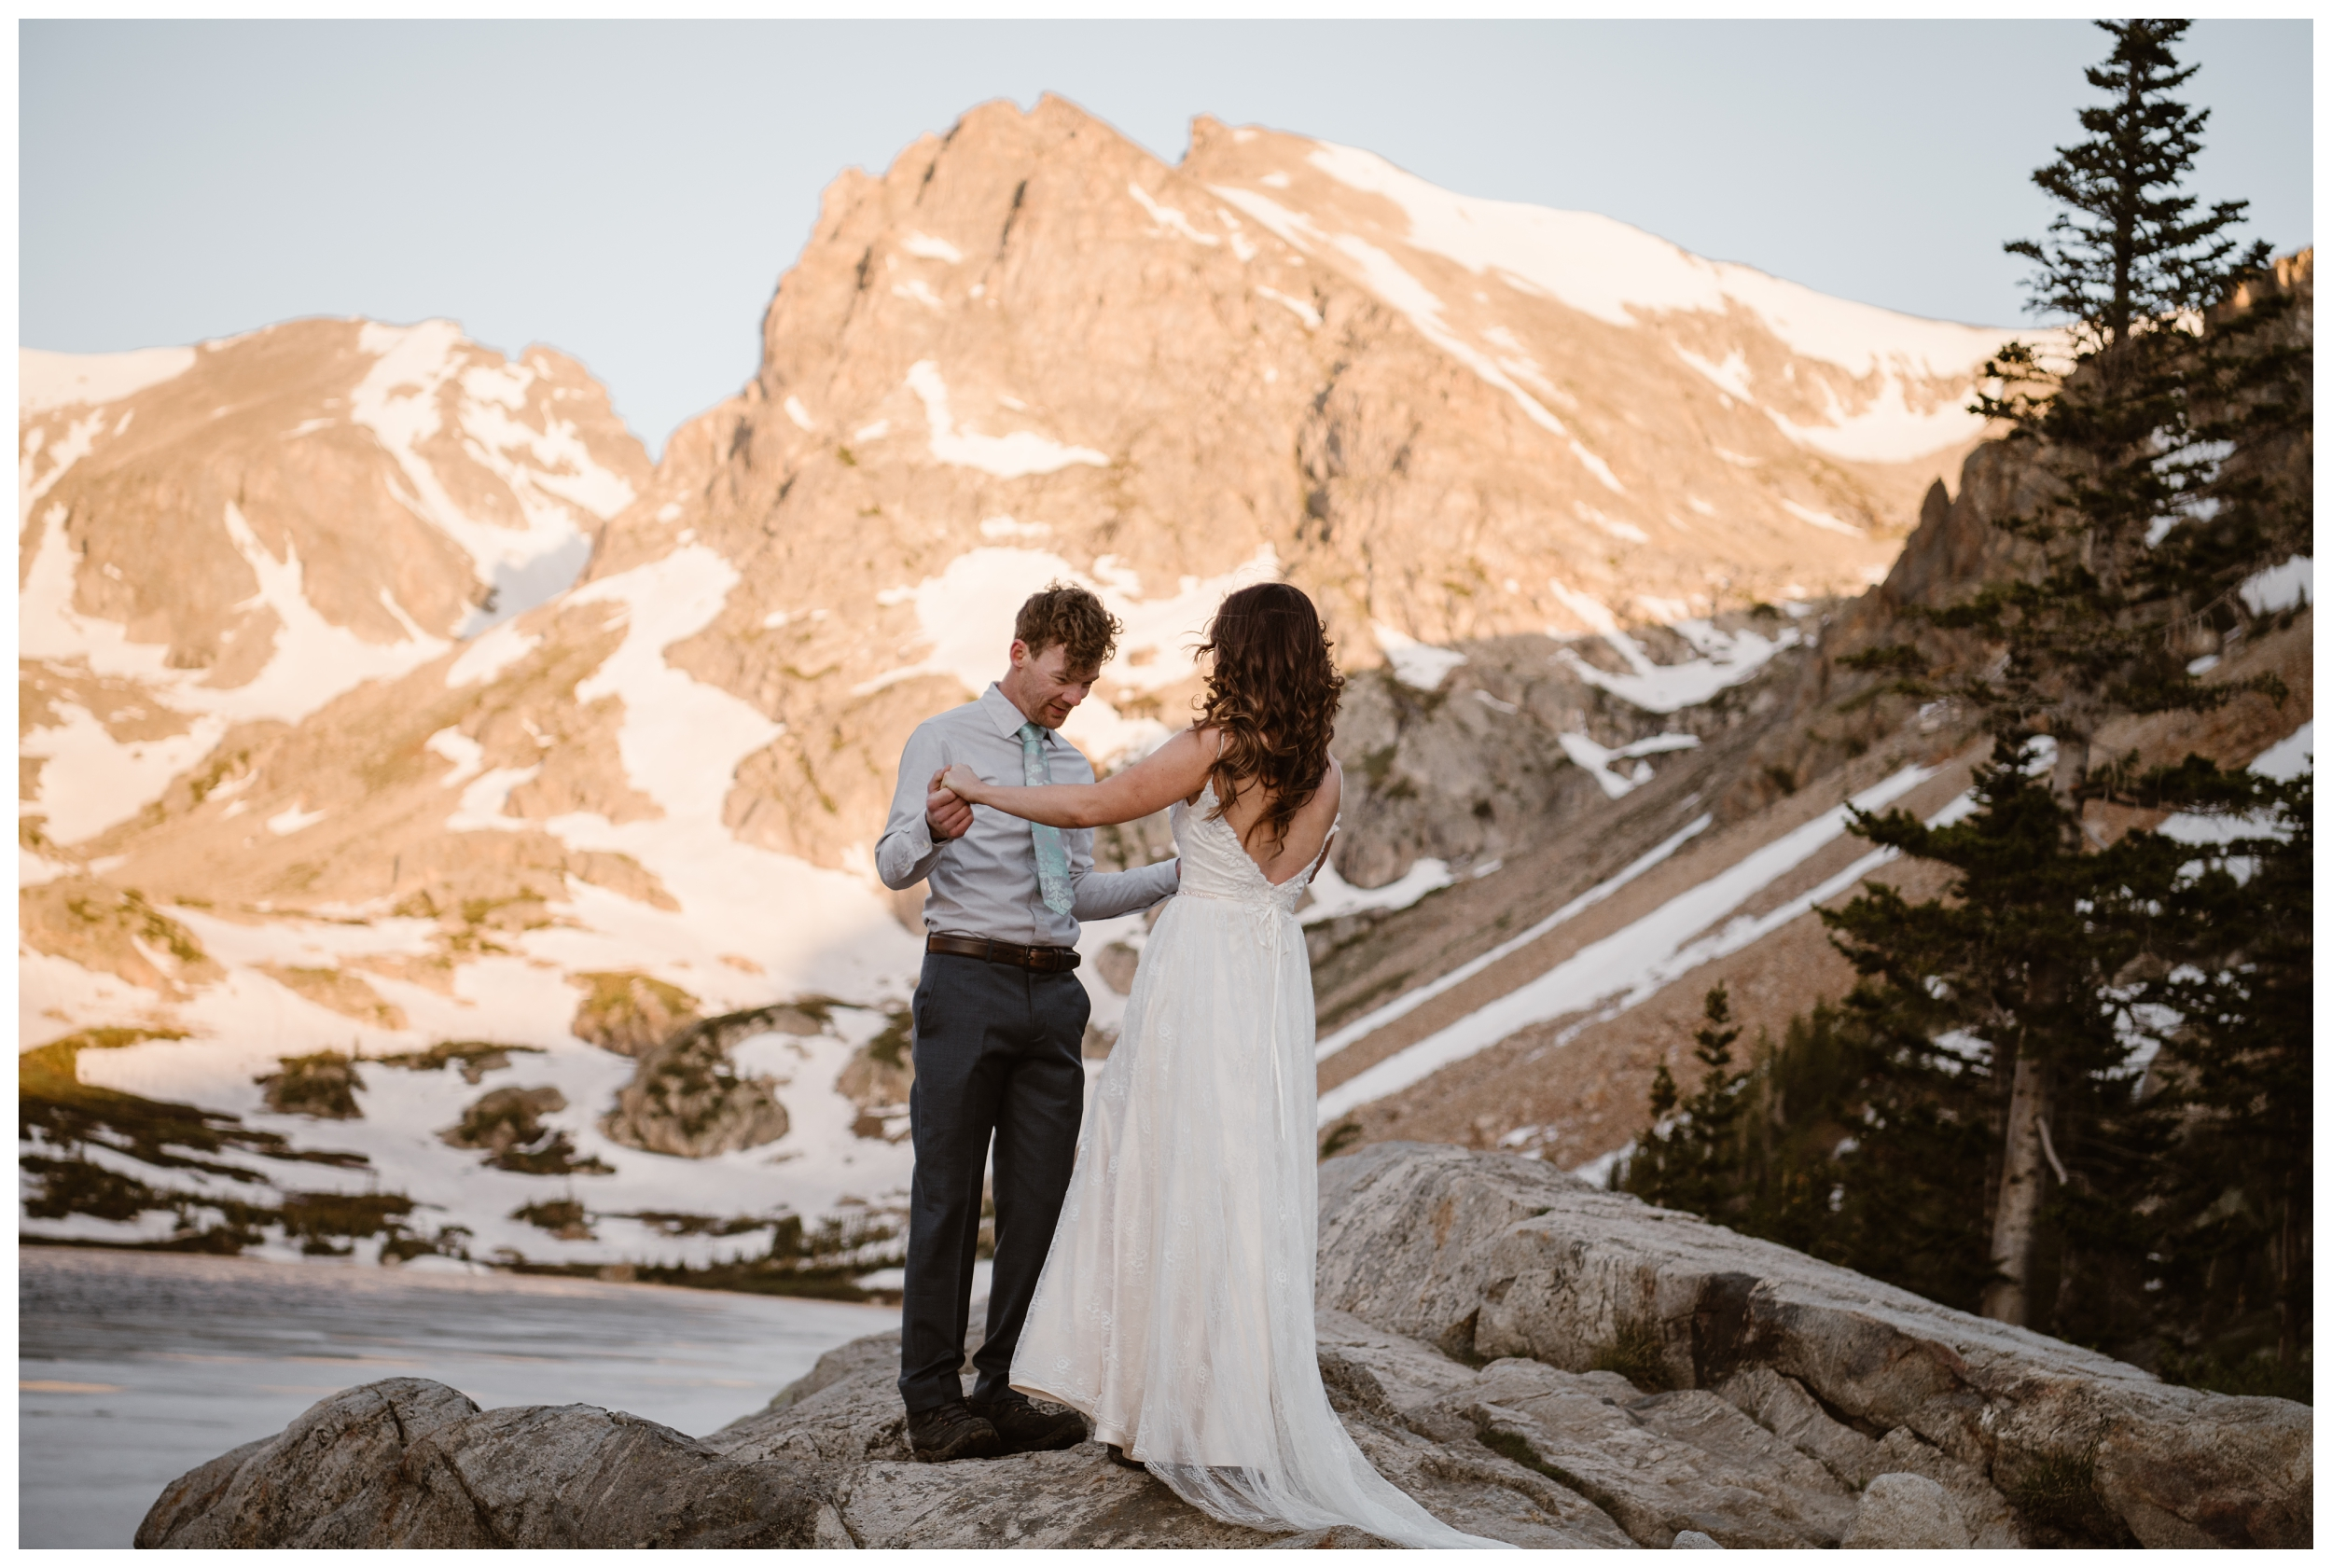 It's possible to have a first look ceremony during your adventure hiking elopement. Karen and Matt brought their wedding clothes up the mountain to Lake Isabelle on their backs. Photo by Adventure Instead, Maddie Mae.